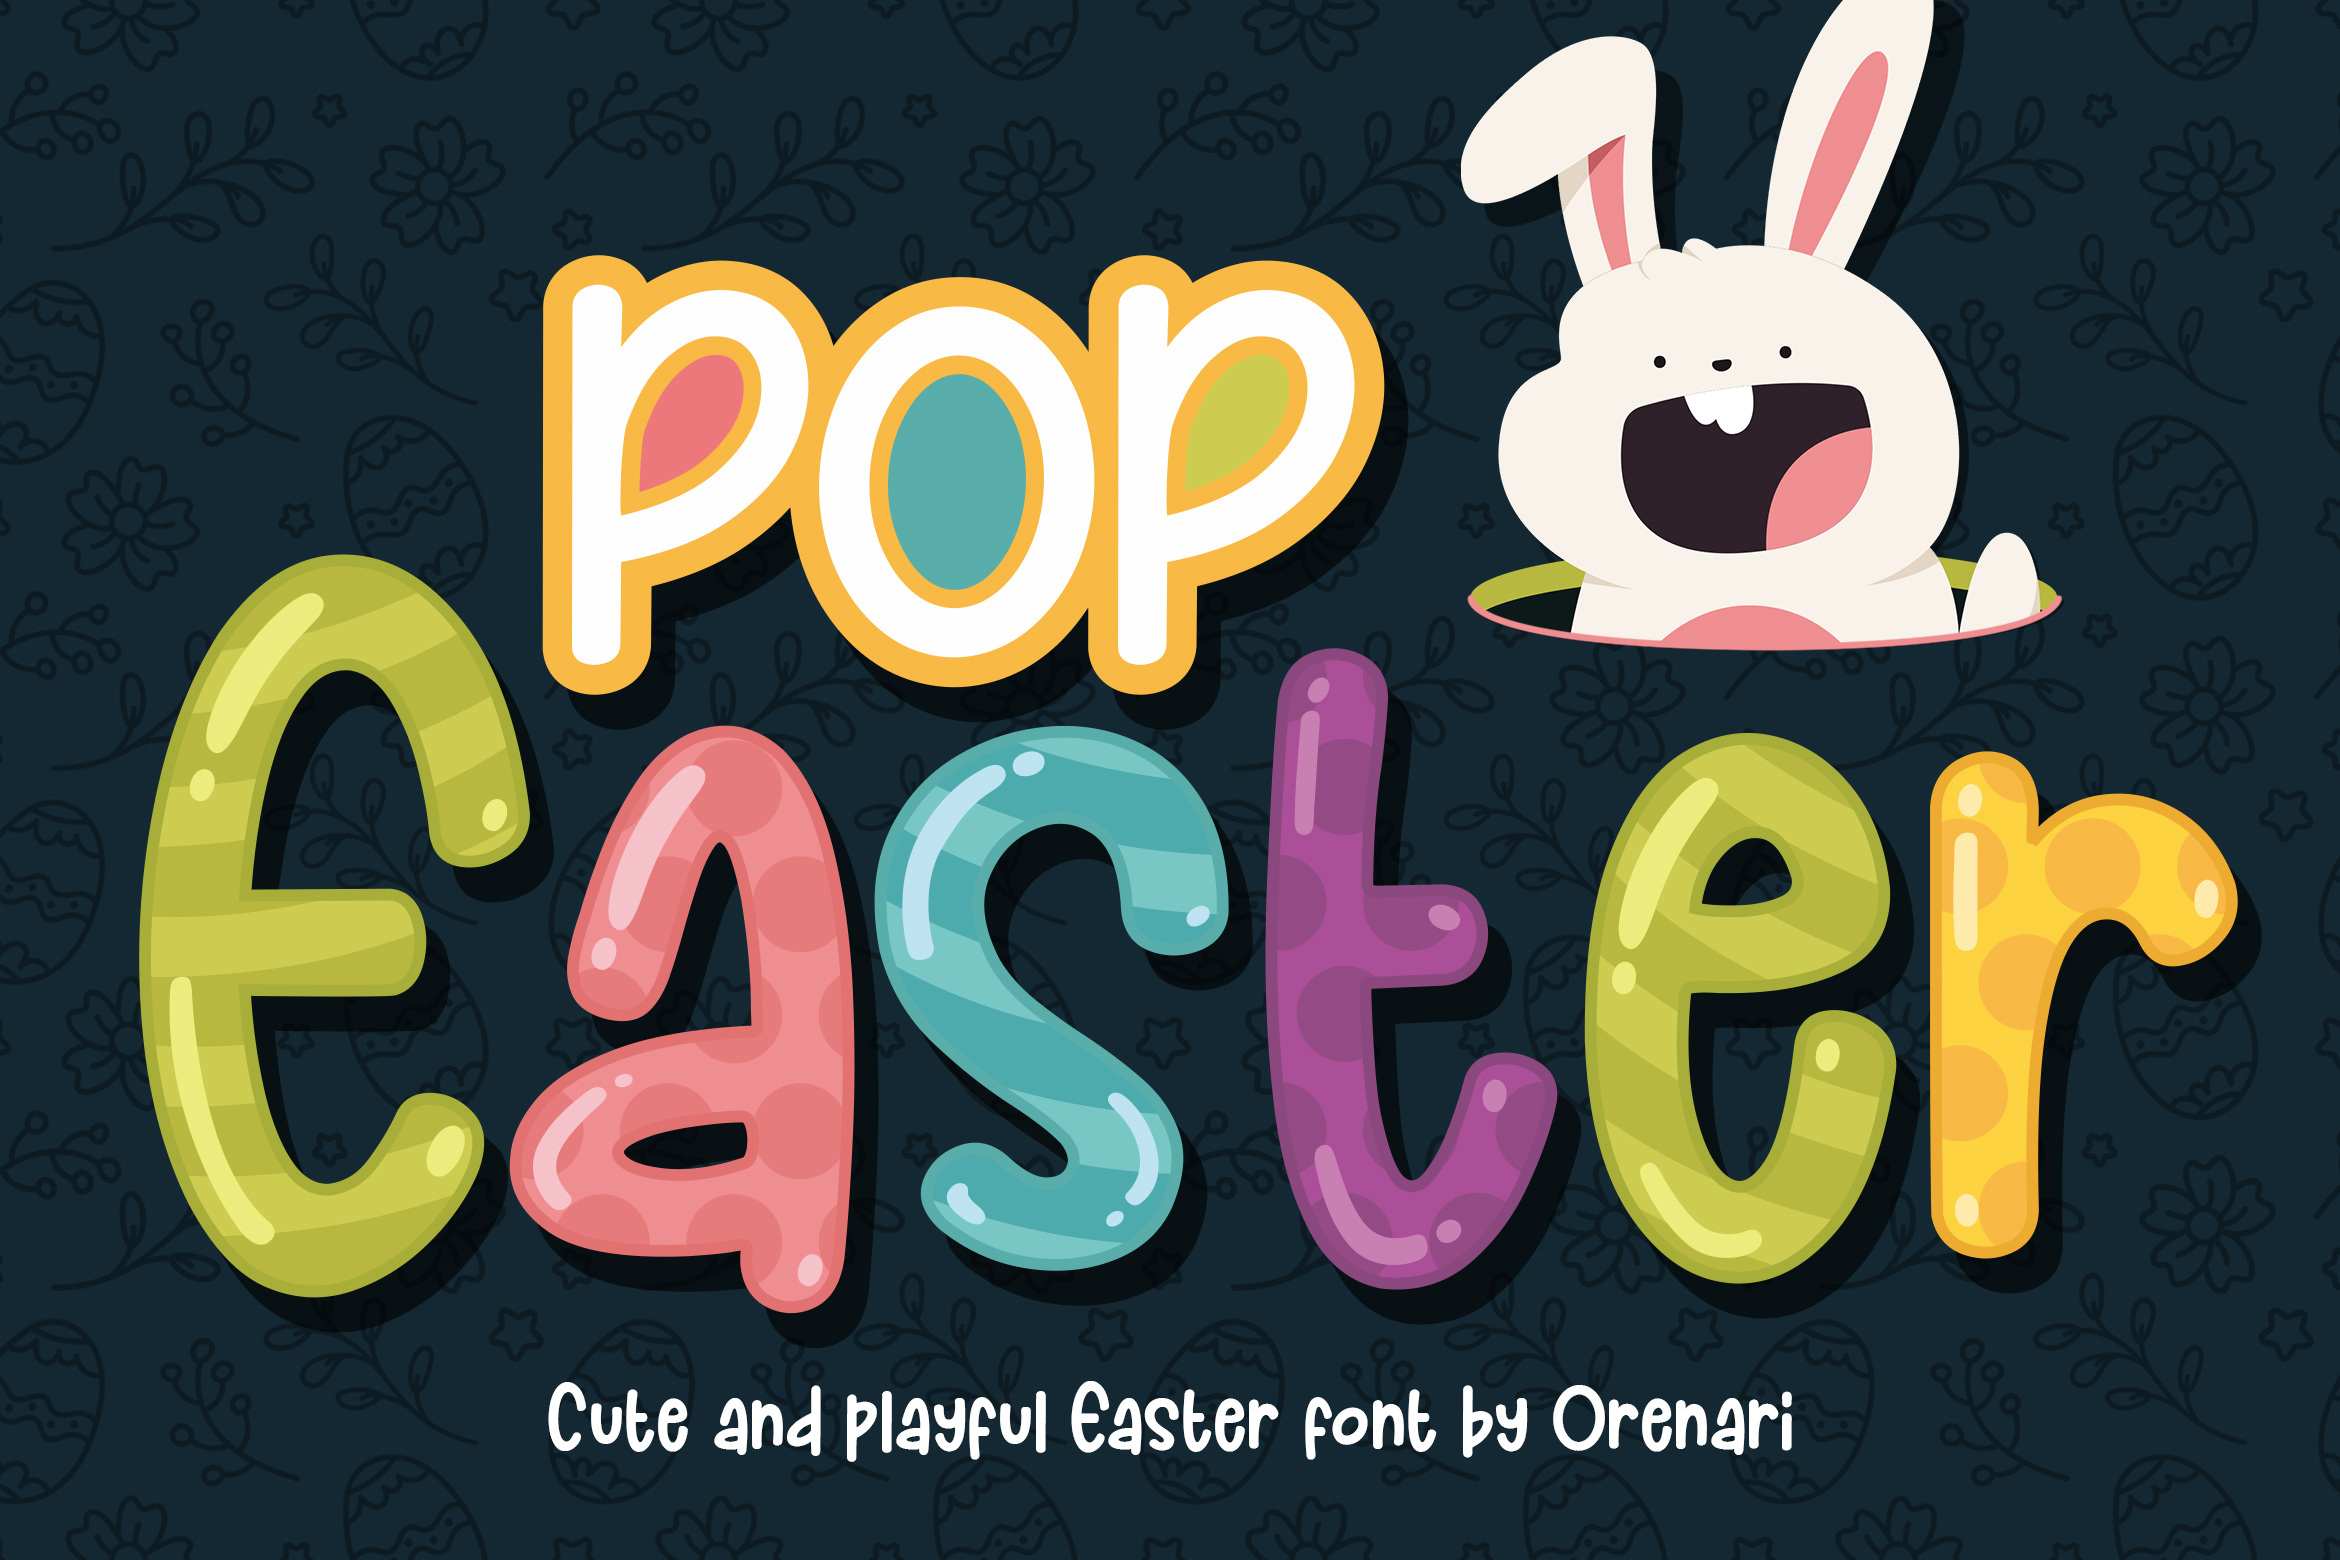 Download Free Pop Easter Font By Orenari Creative Fabrica for Cricut Explore, Silhouette and other cutting machines.